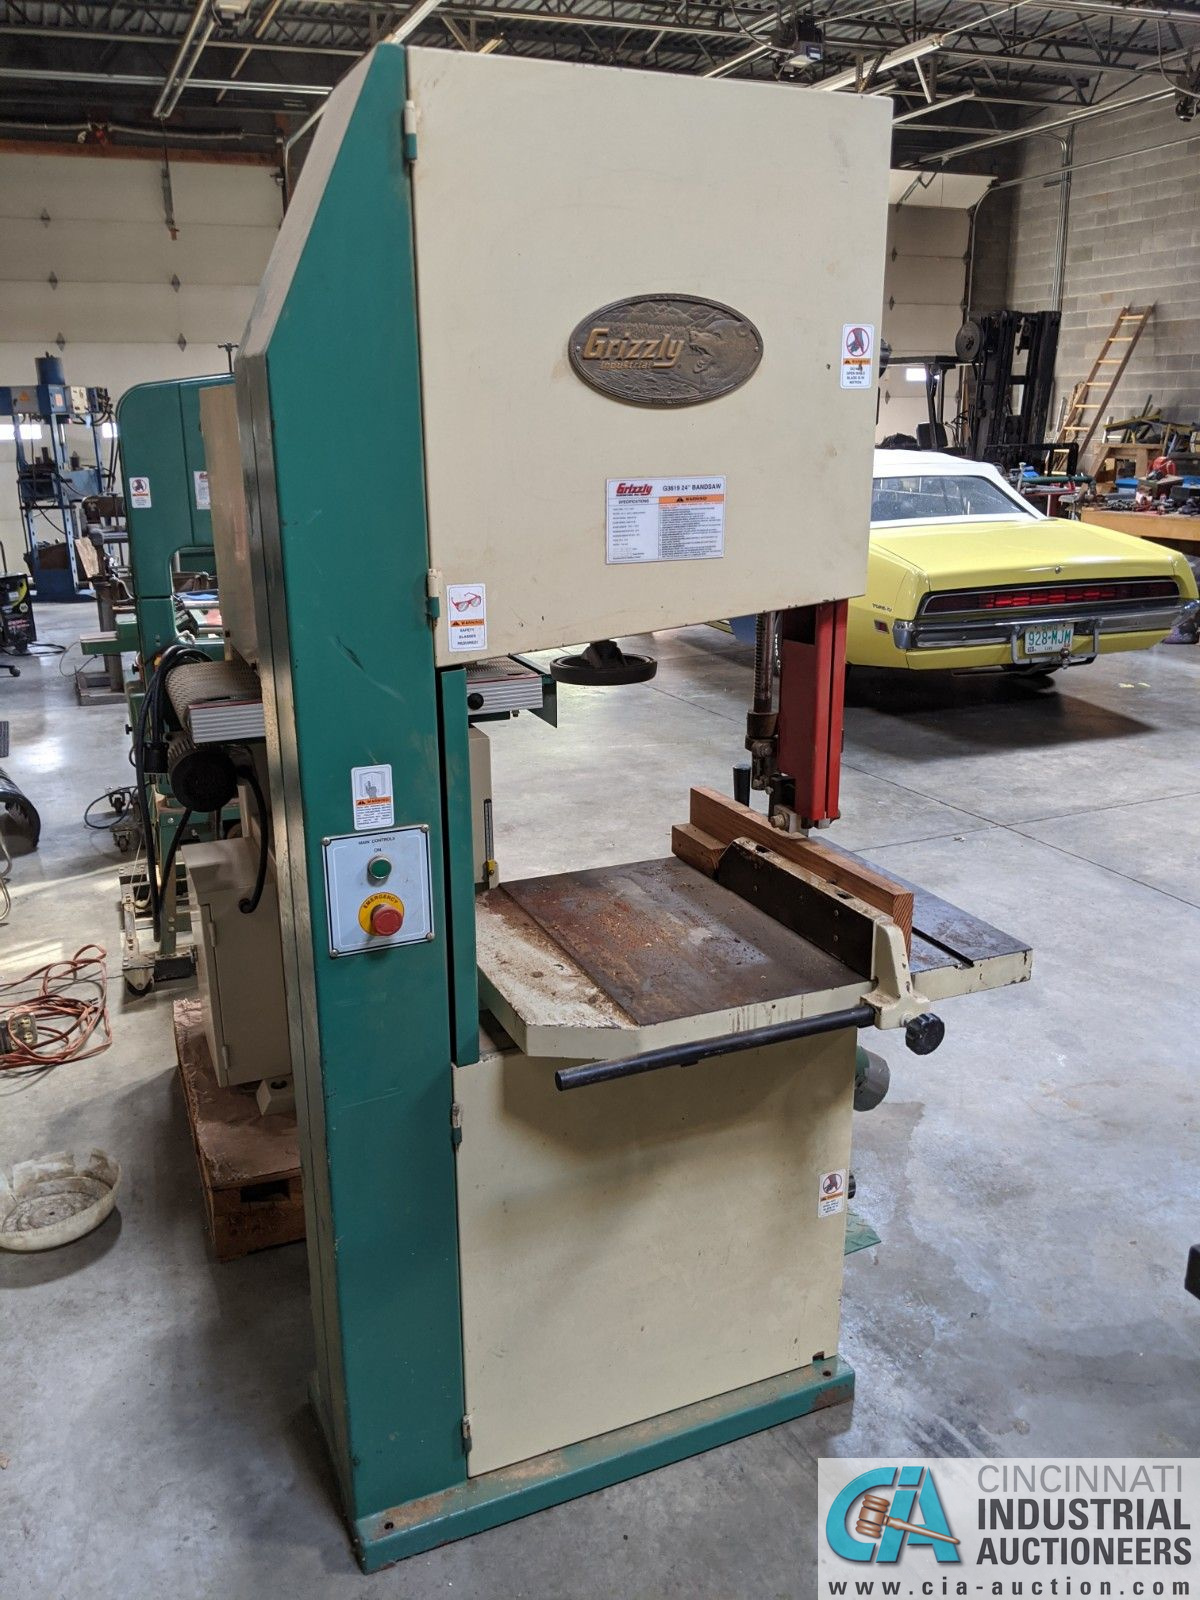 """12"""" GRIZZLY MODEL G3619 VERTICAL BAND SAW; S/N 08146, 3-1/2"""" X 23-3/4"""" TABLE, 5-HP, SINGLE PHASE ( - Image 2 of 6"""